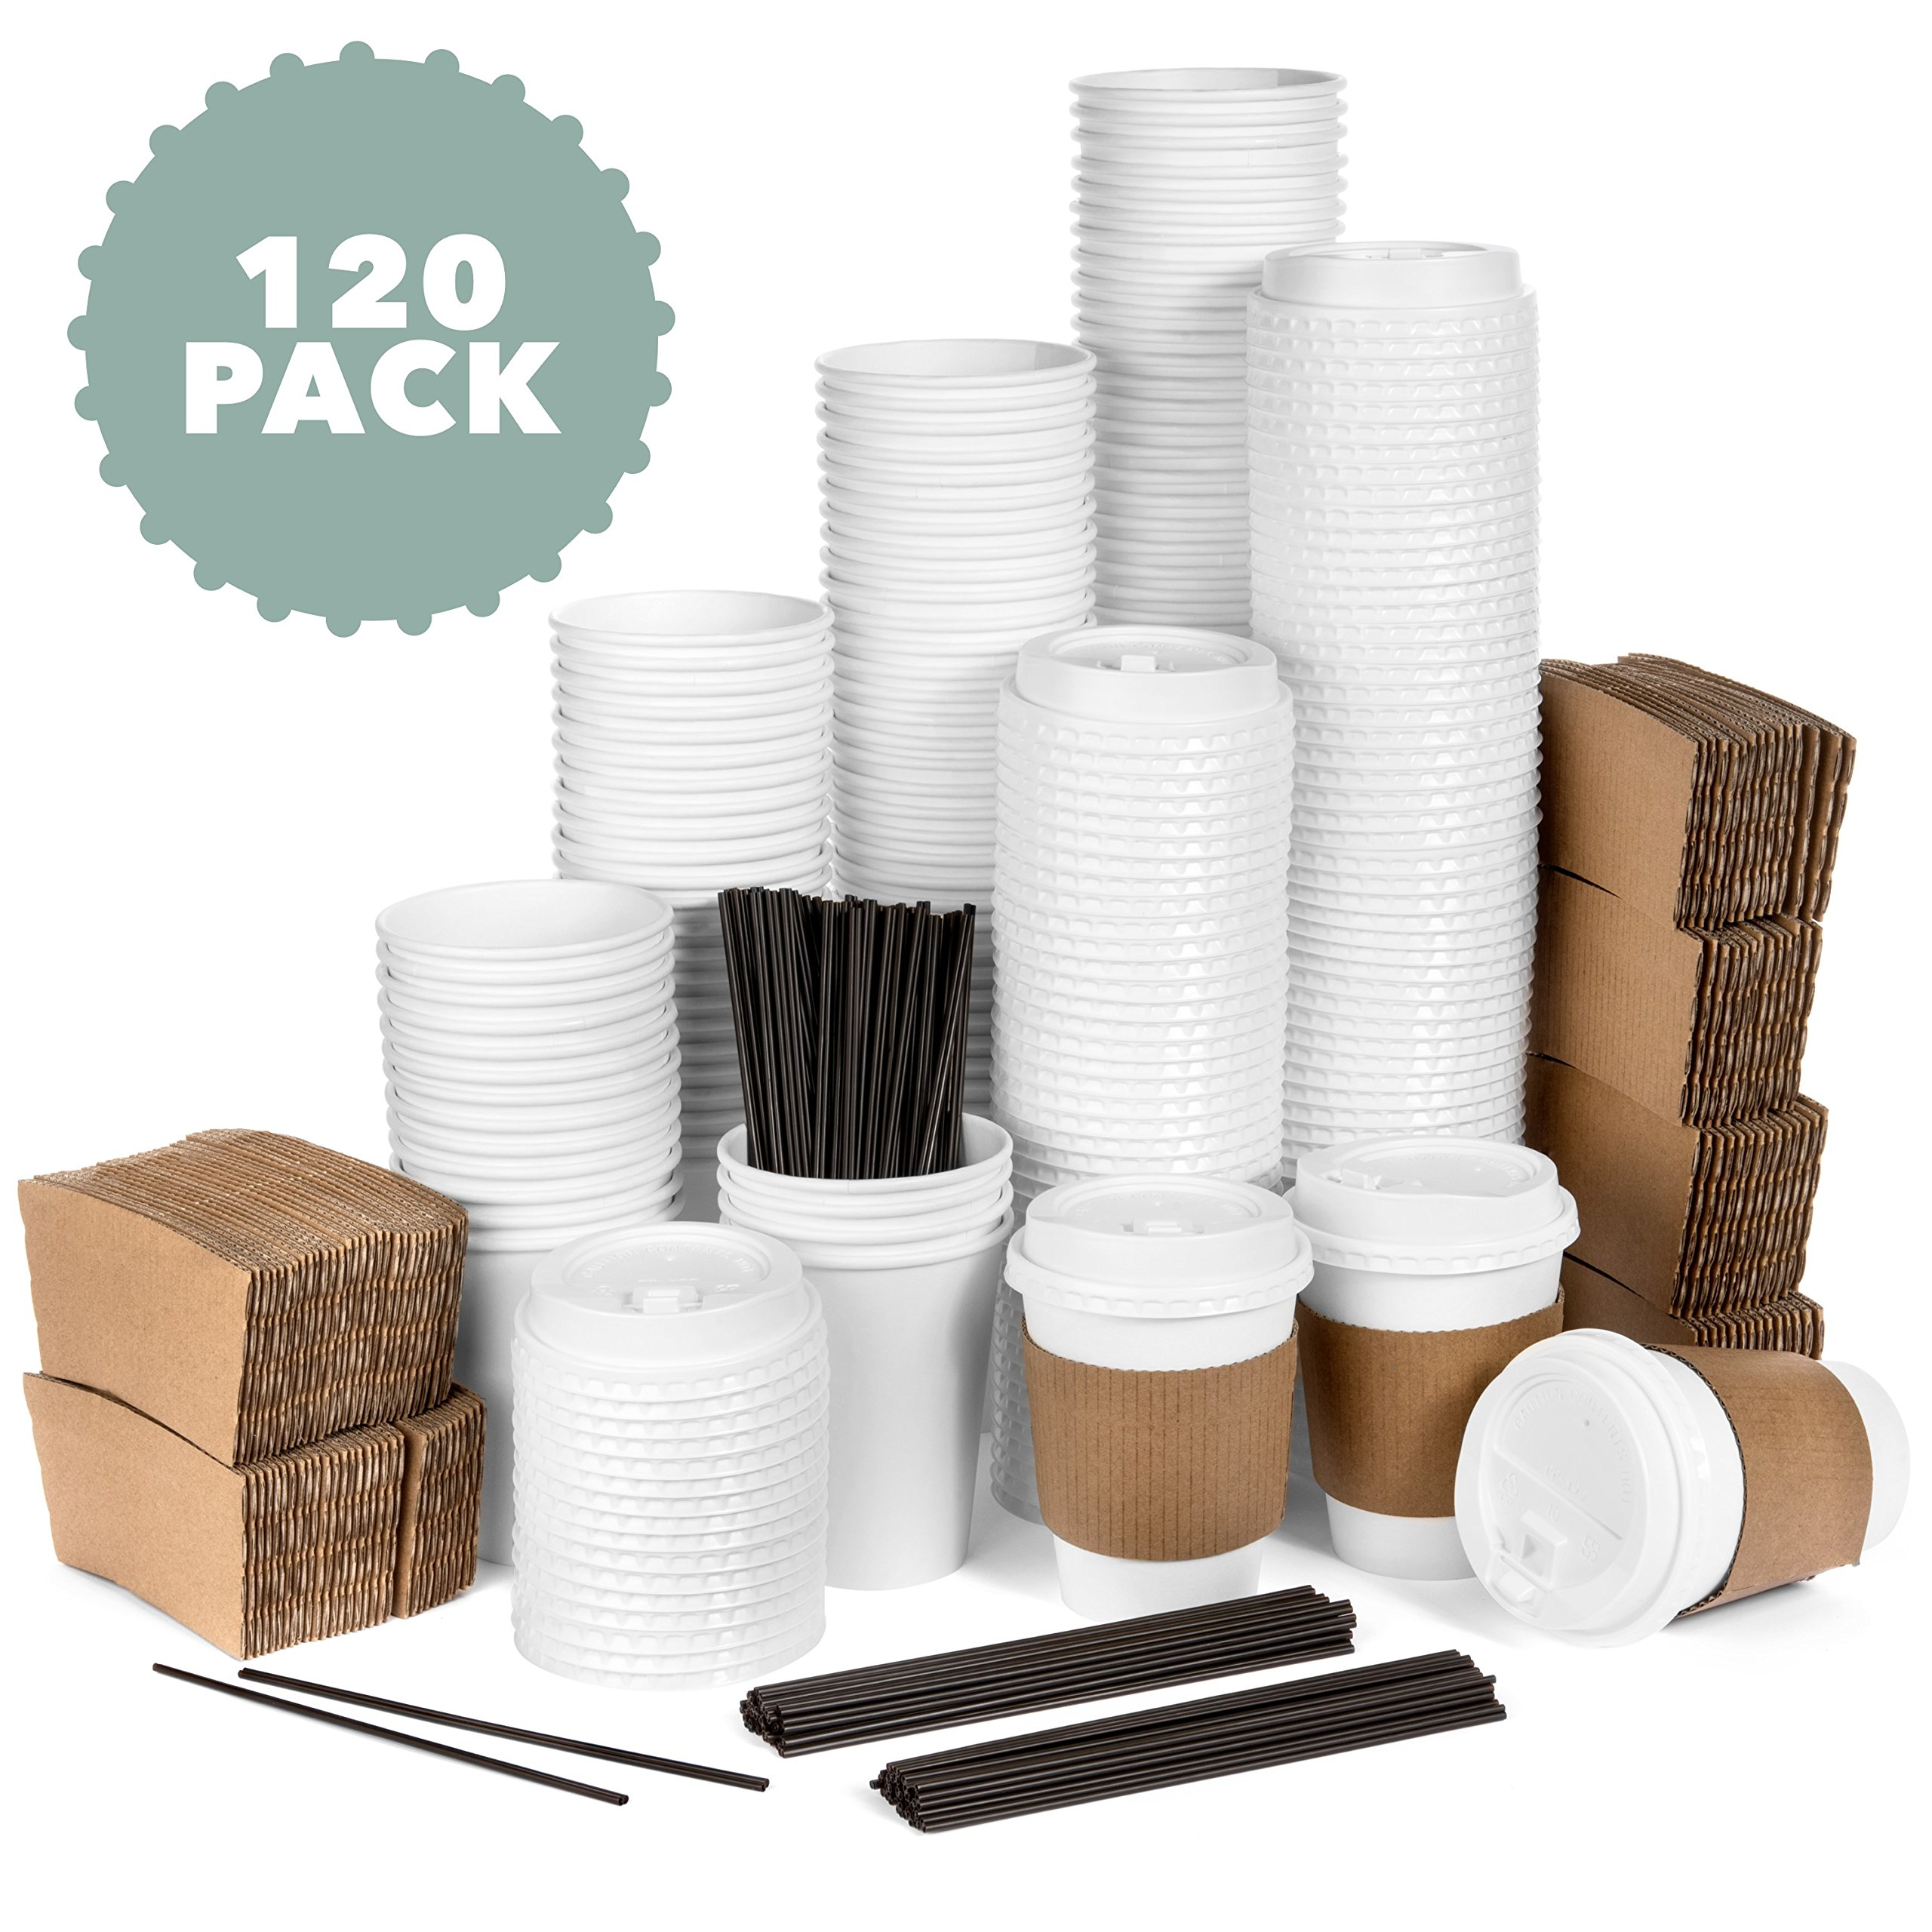 Average Joe - 120 Pack - 12 Oz Disposable Hot Paper Coffee Cups, Lids, Sleeves, Stirring Straws To Go - (Clean White Color)